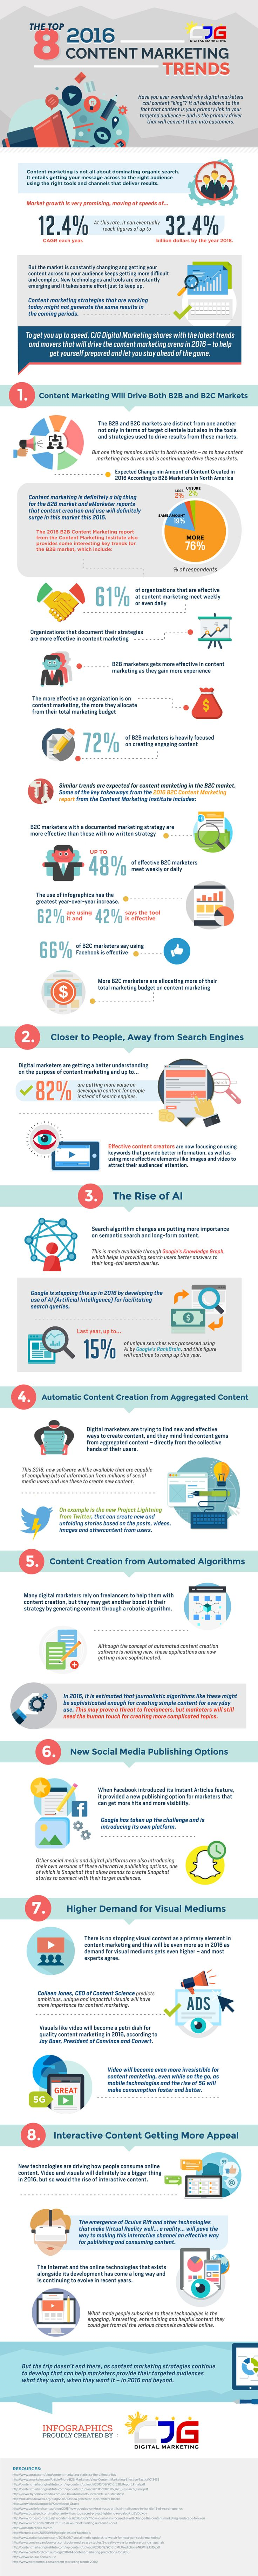 The Top 8 Hottest 2016 Content Marketing Trends (Infographic)